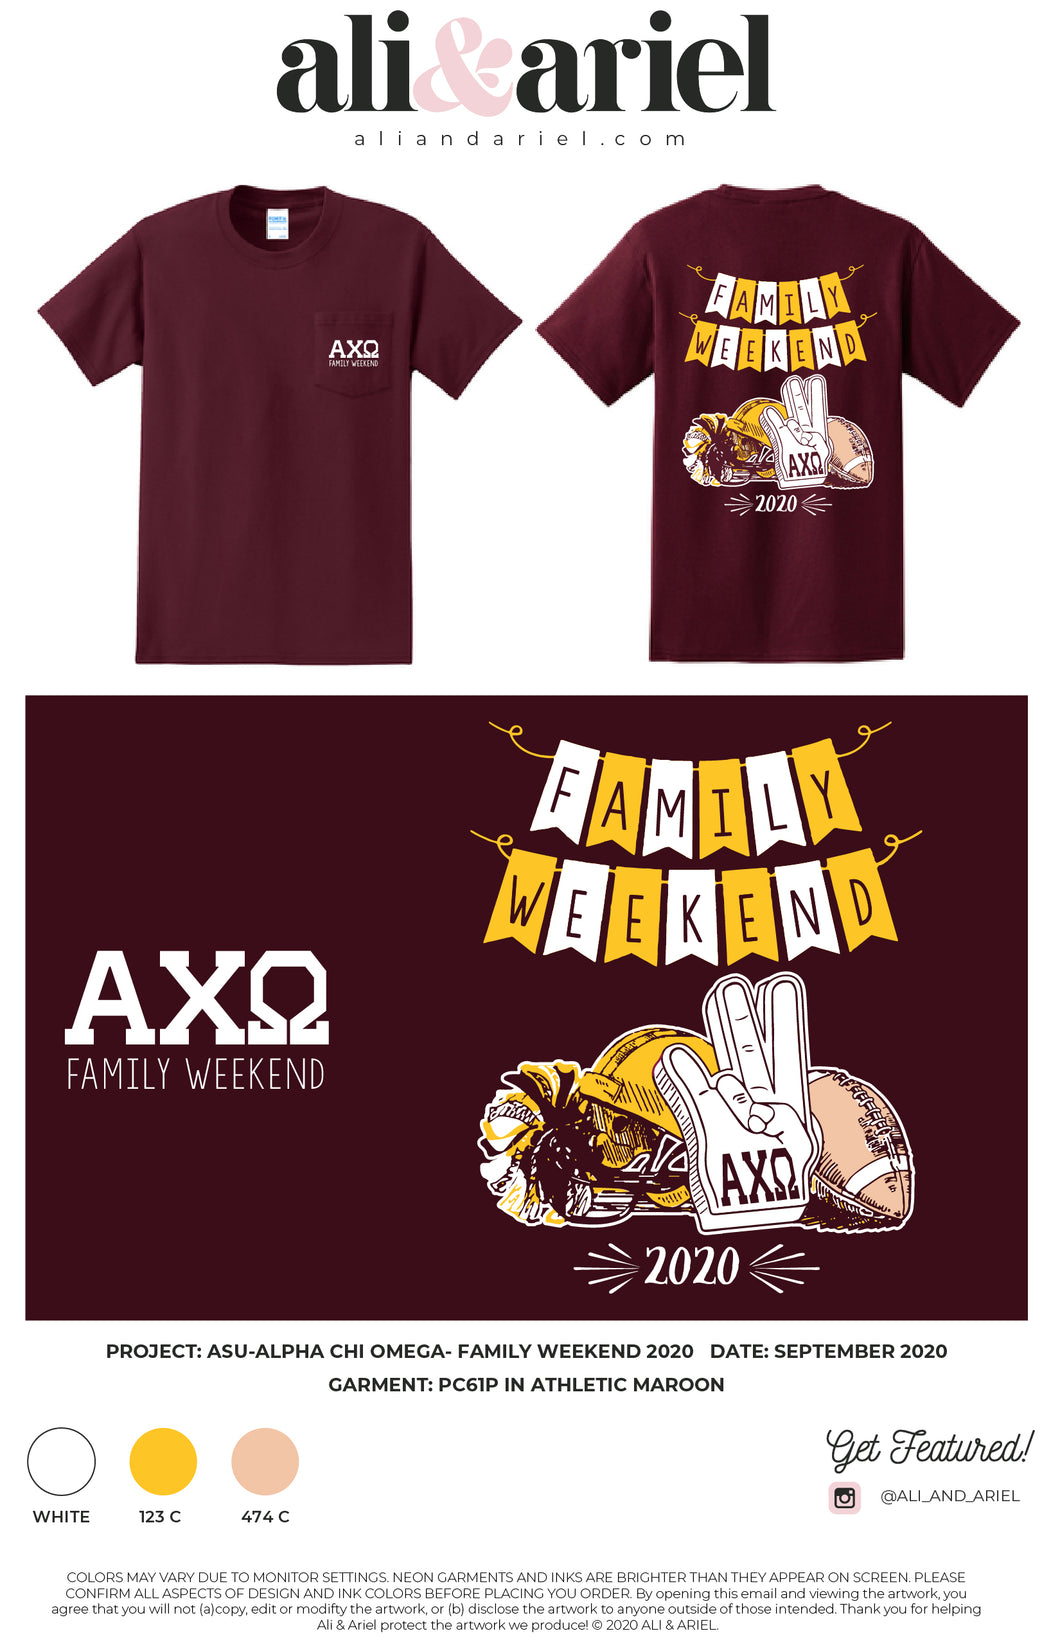 ASU-Alpha Chi Omega- Family Weekend 2020